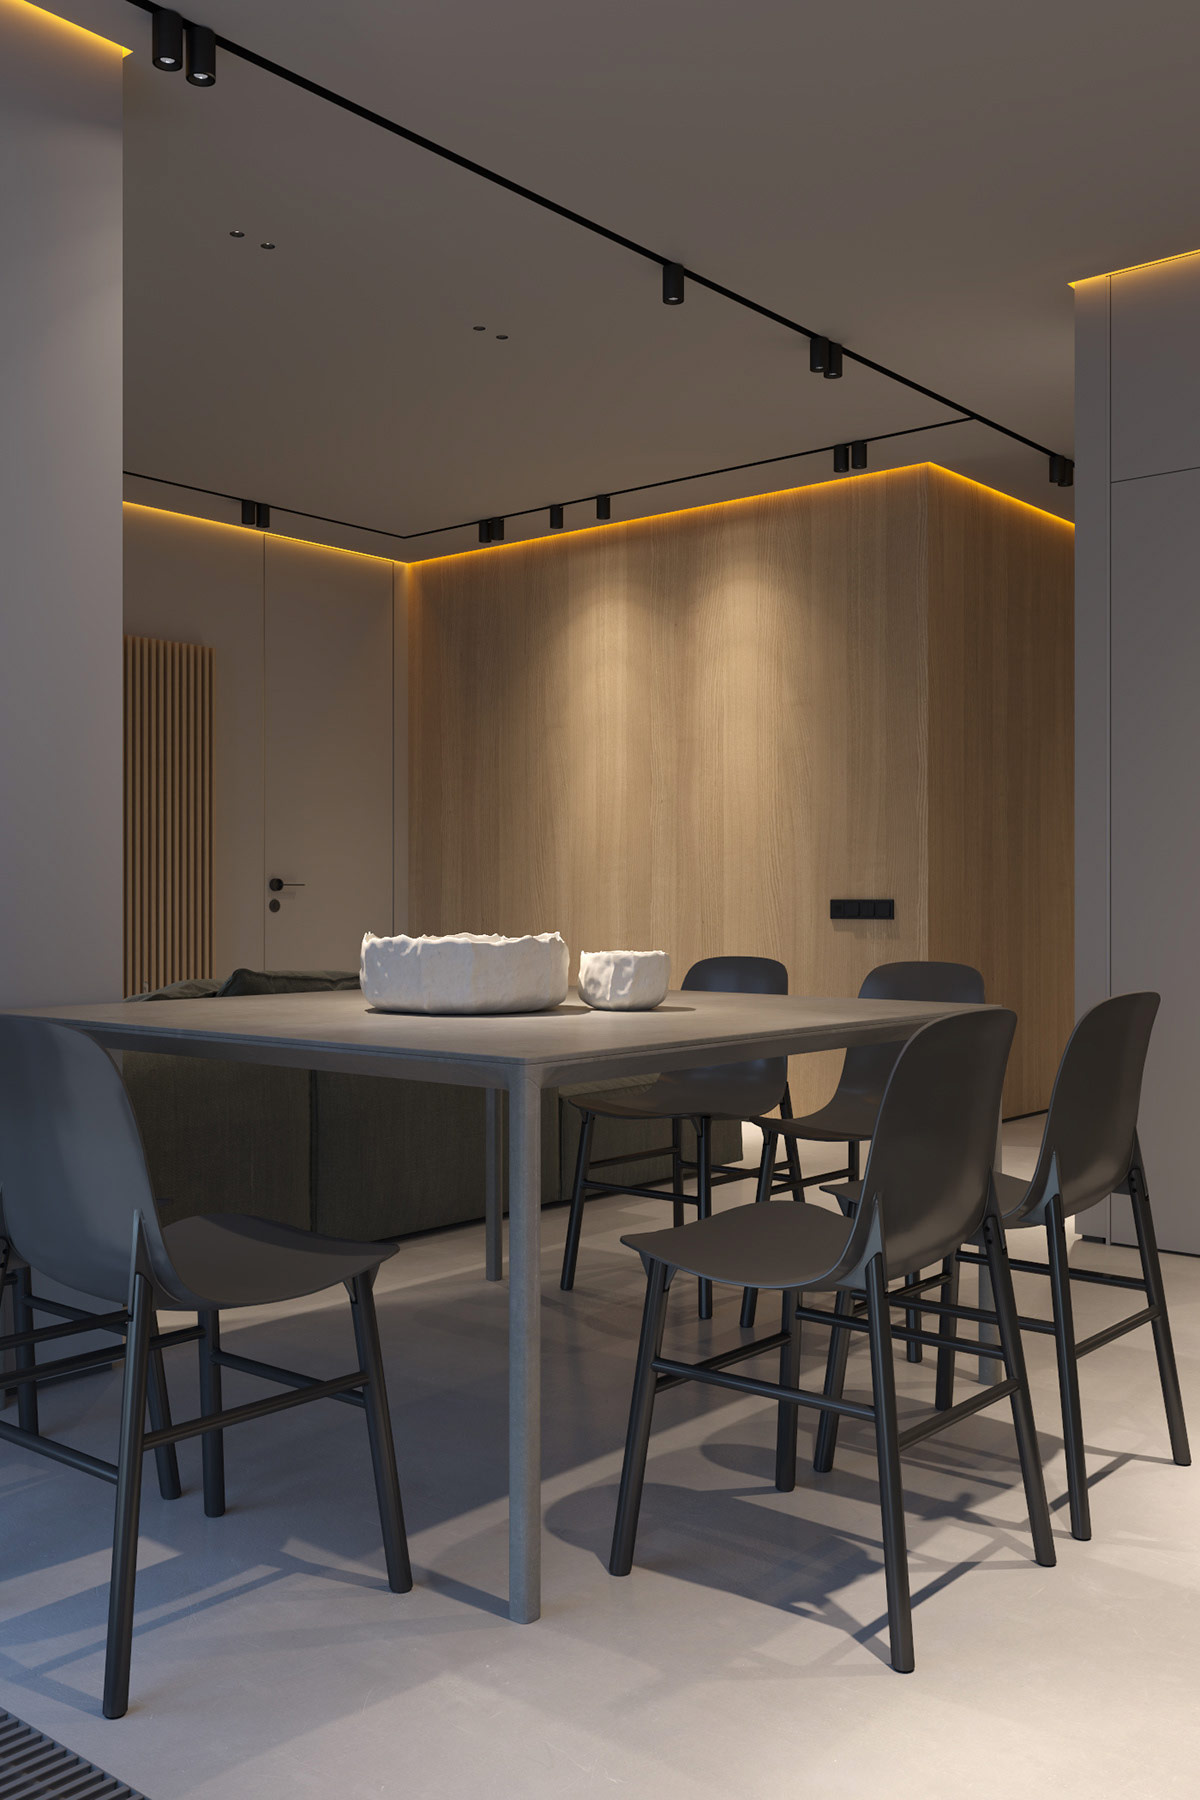 How To Light A Minimalist Interior With Single Circuit Tracks Strips